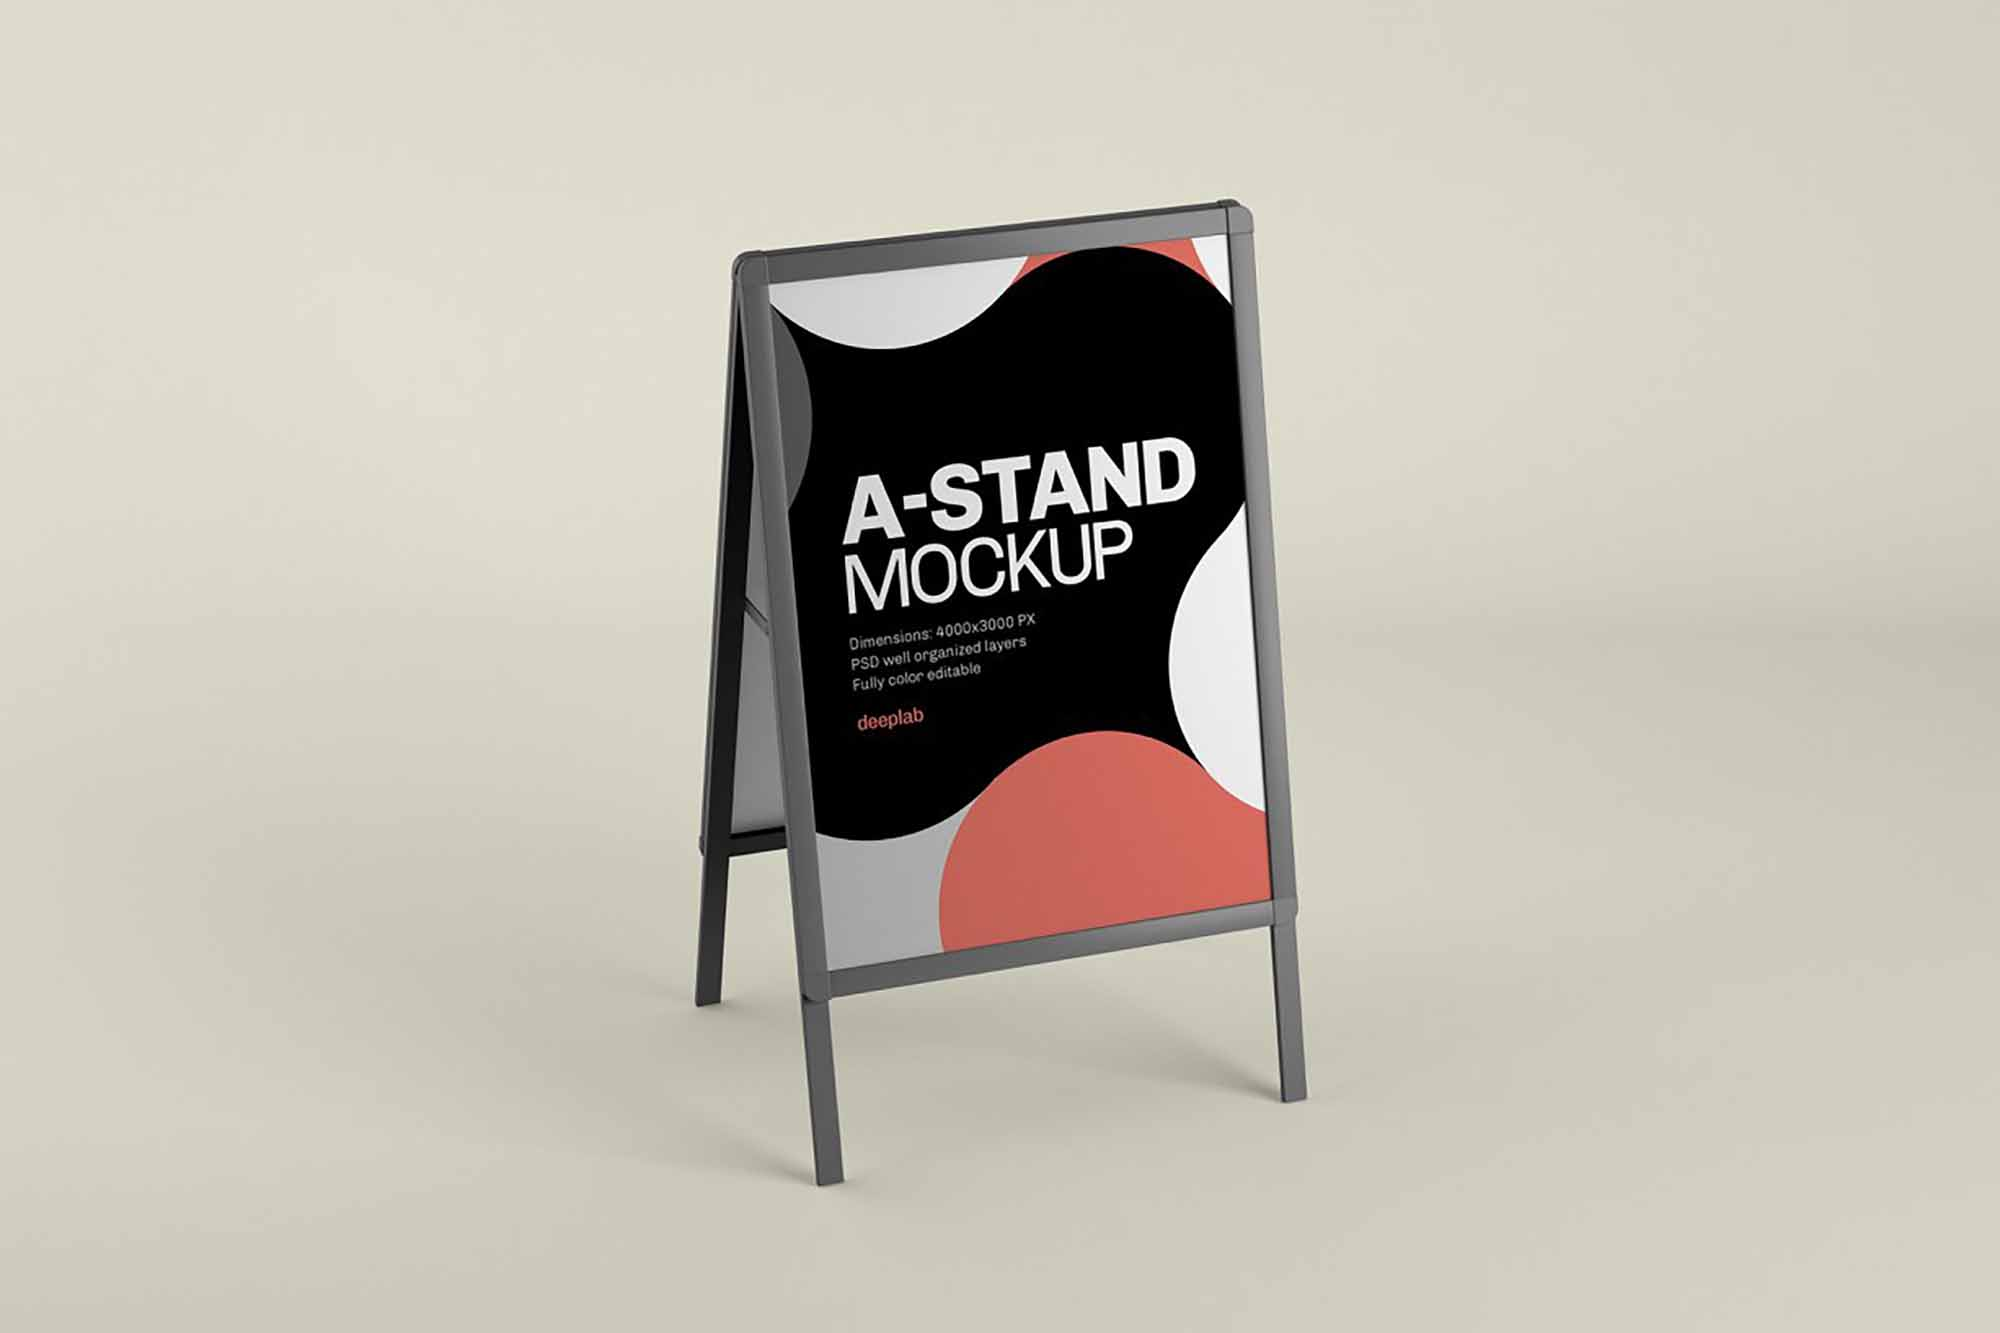 Advertising A-Stand Mockup 2